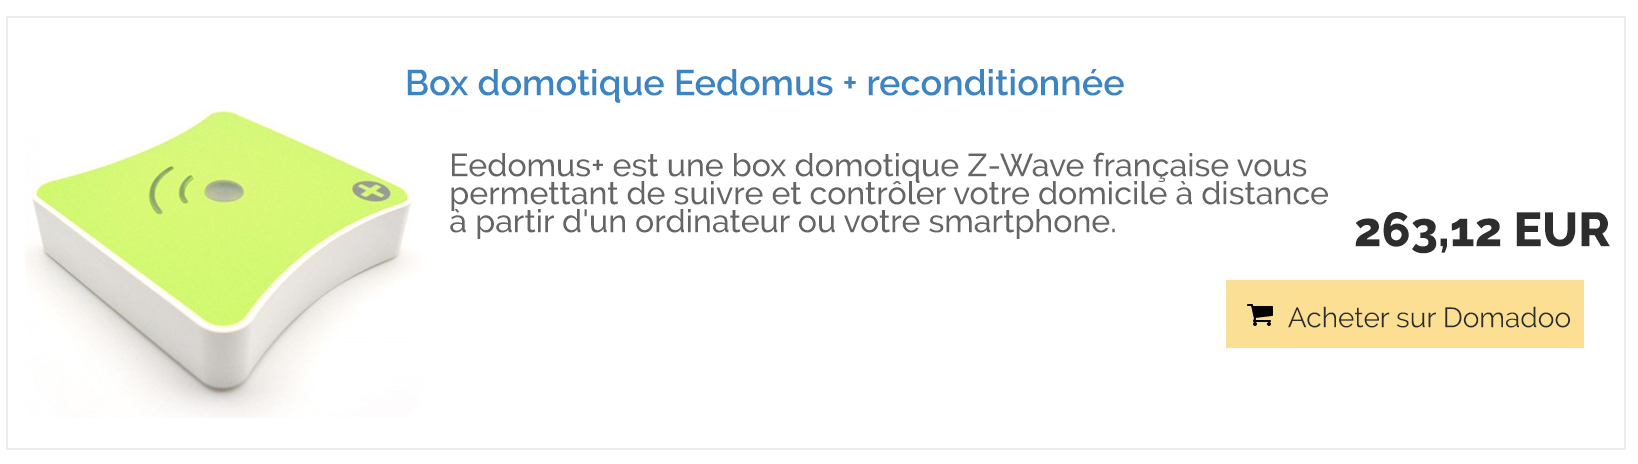 box-domotique-eedomus-reconditionnee